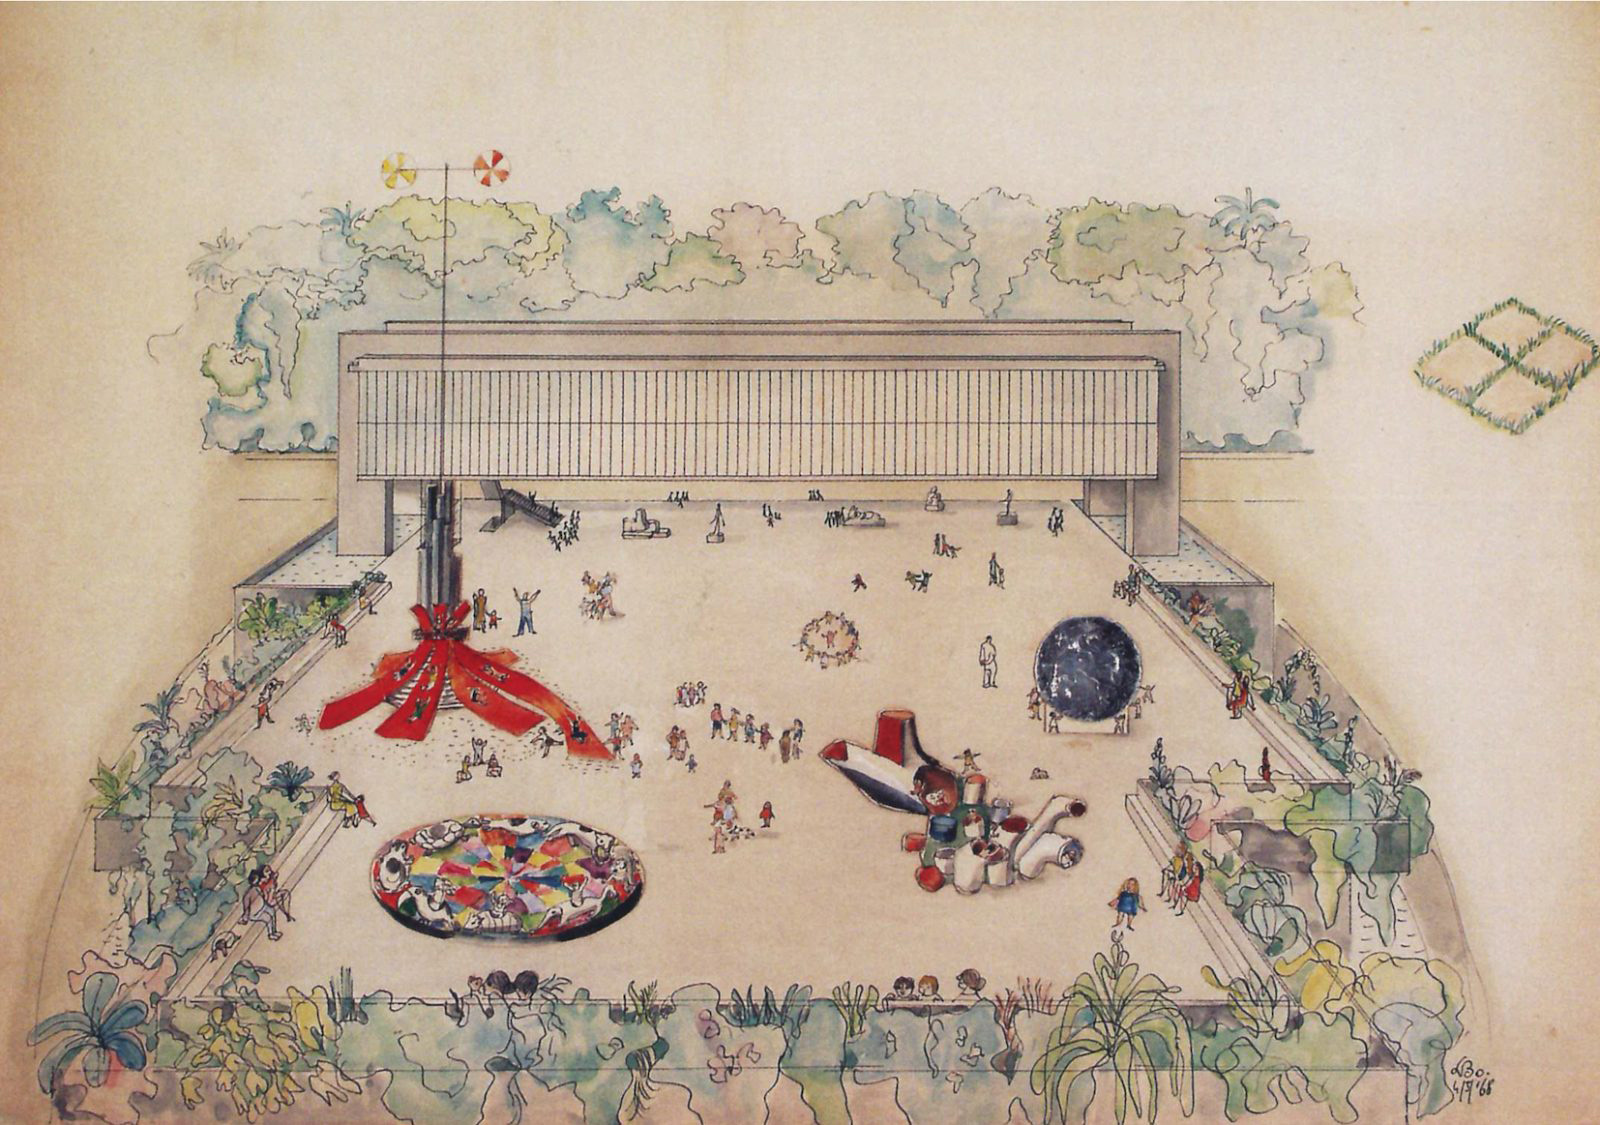 Drawing of ephemeral structures for the MASP belvedere | The Special Golden Lion for Lifetime Achievement, in memoriam, Biennale Architettura 2021 | Lina Bo Bardi | STIRworld